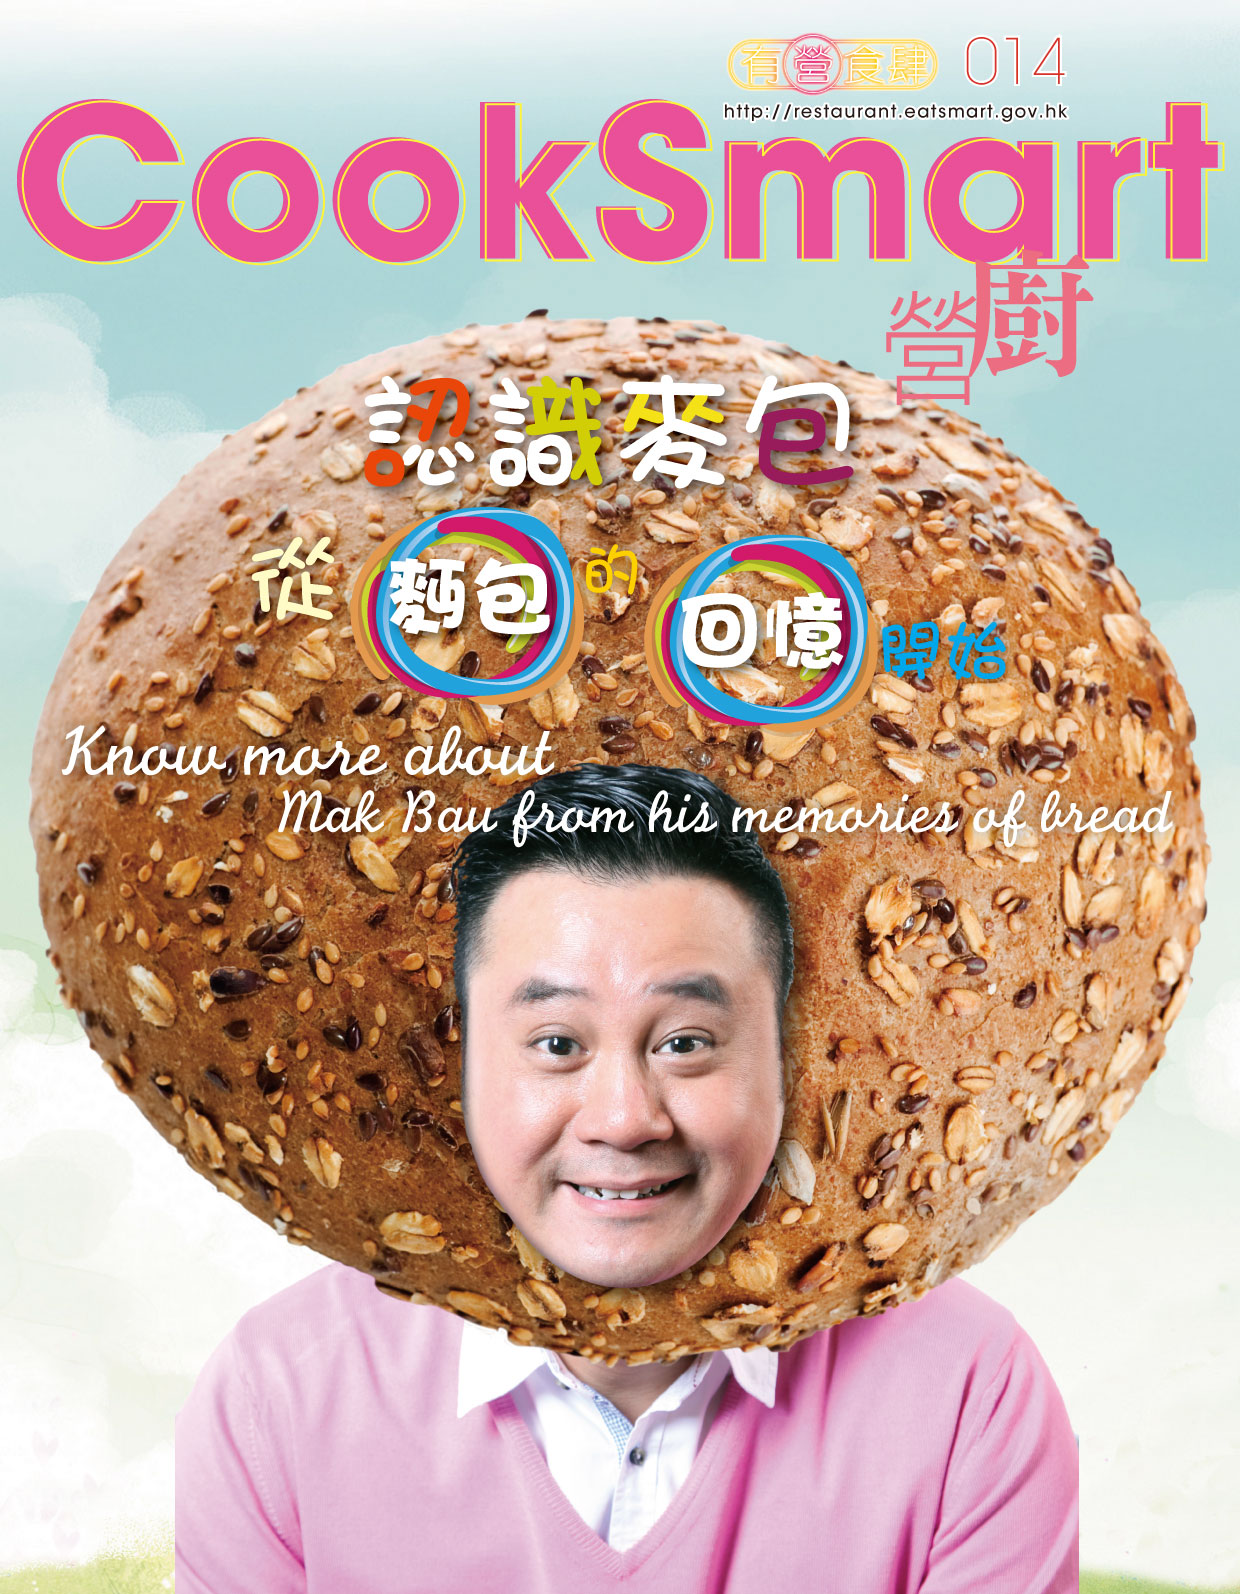 CookSmart (14th Issue) Page 1